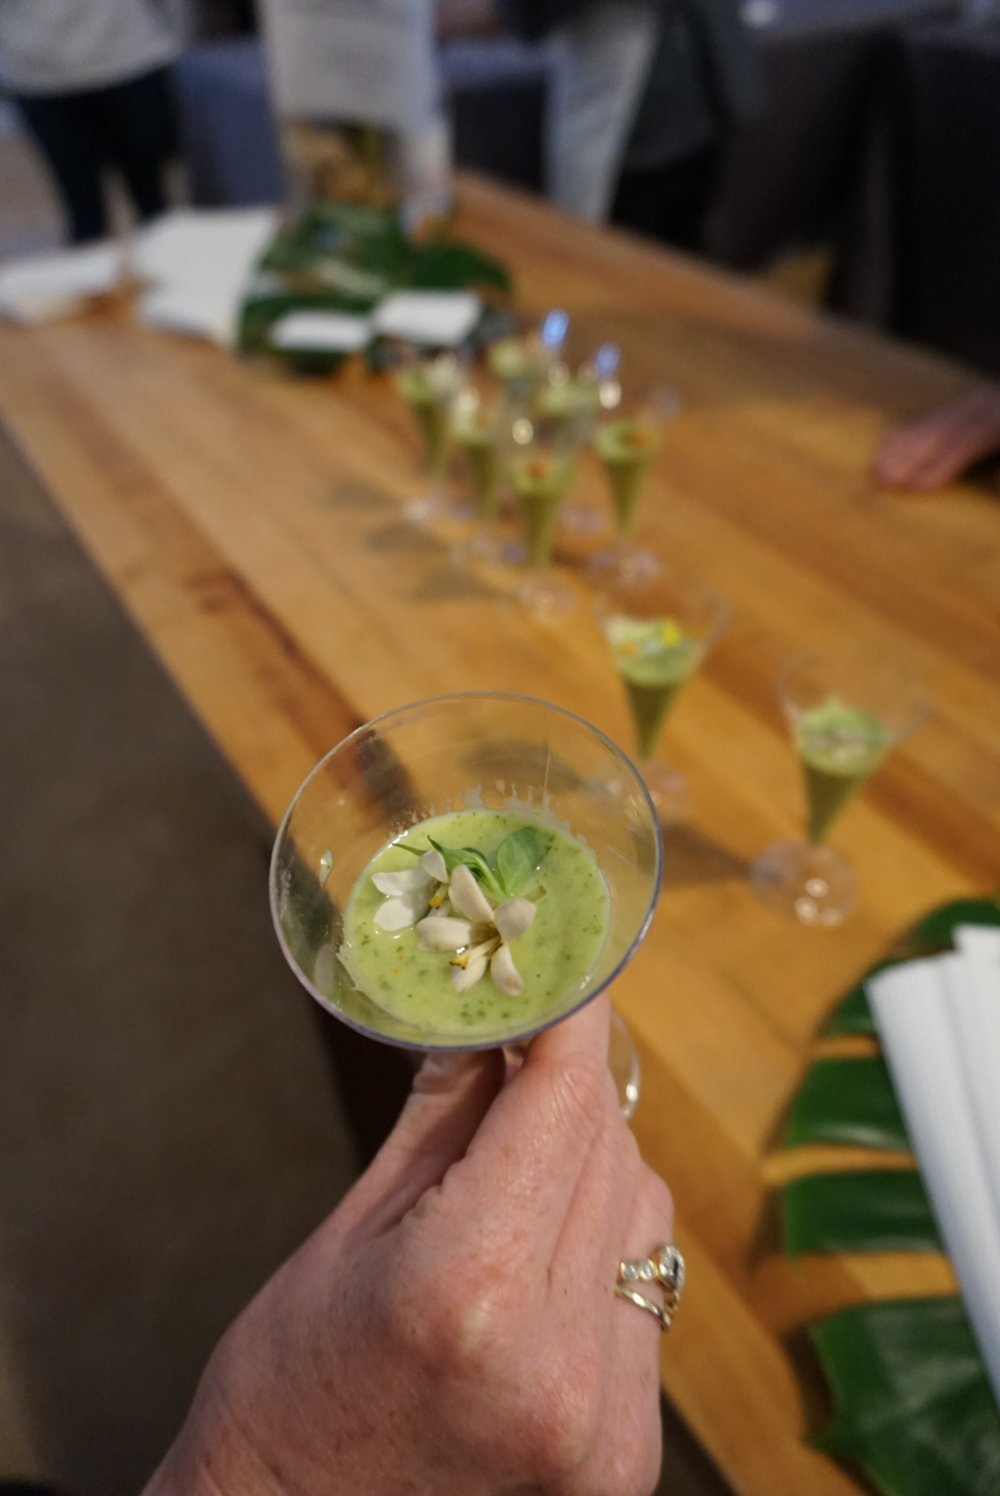 Avacado, mint and cucumber shooter topped with créme fraîche and wild flowers